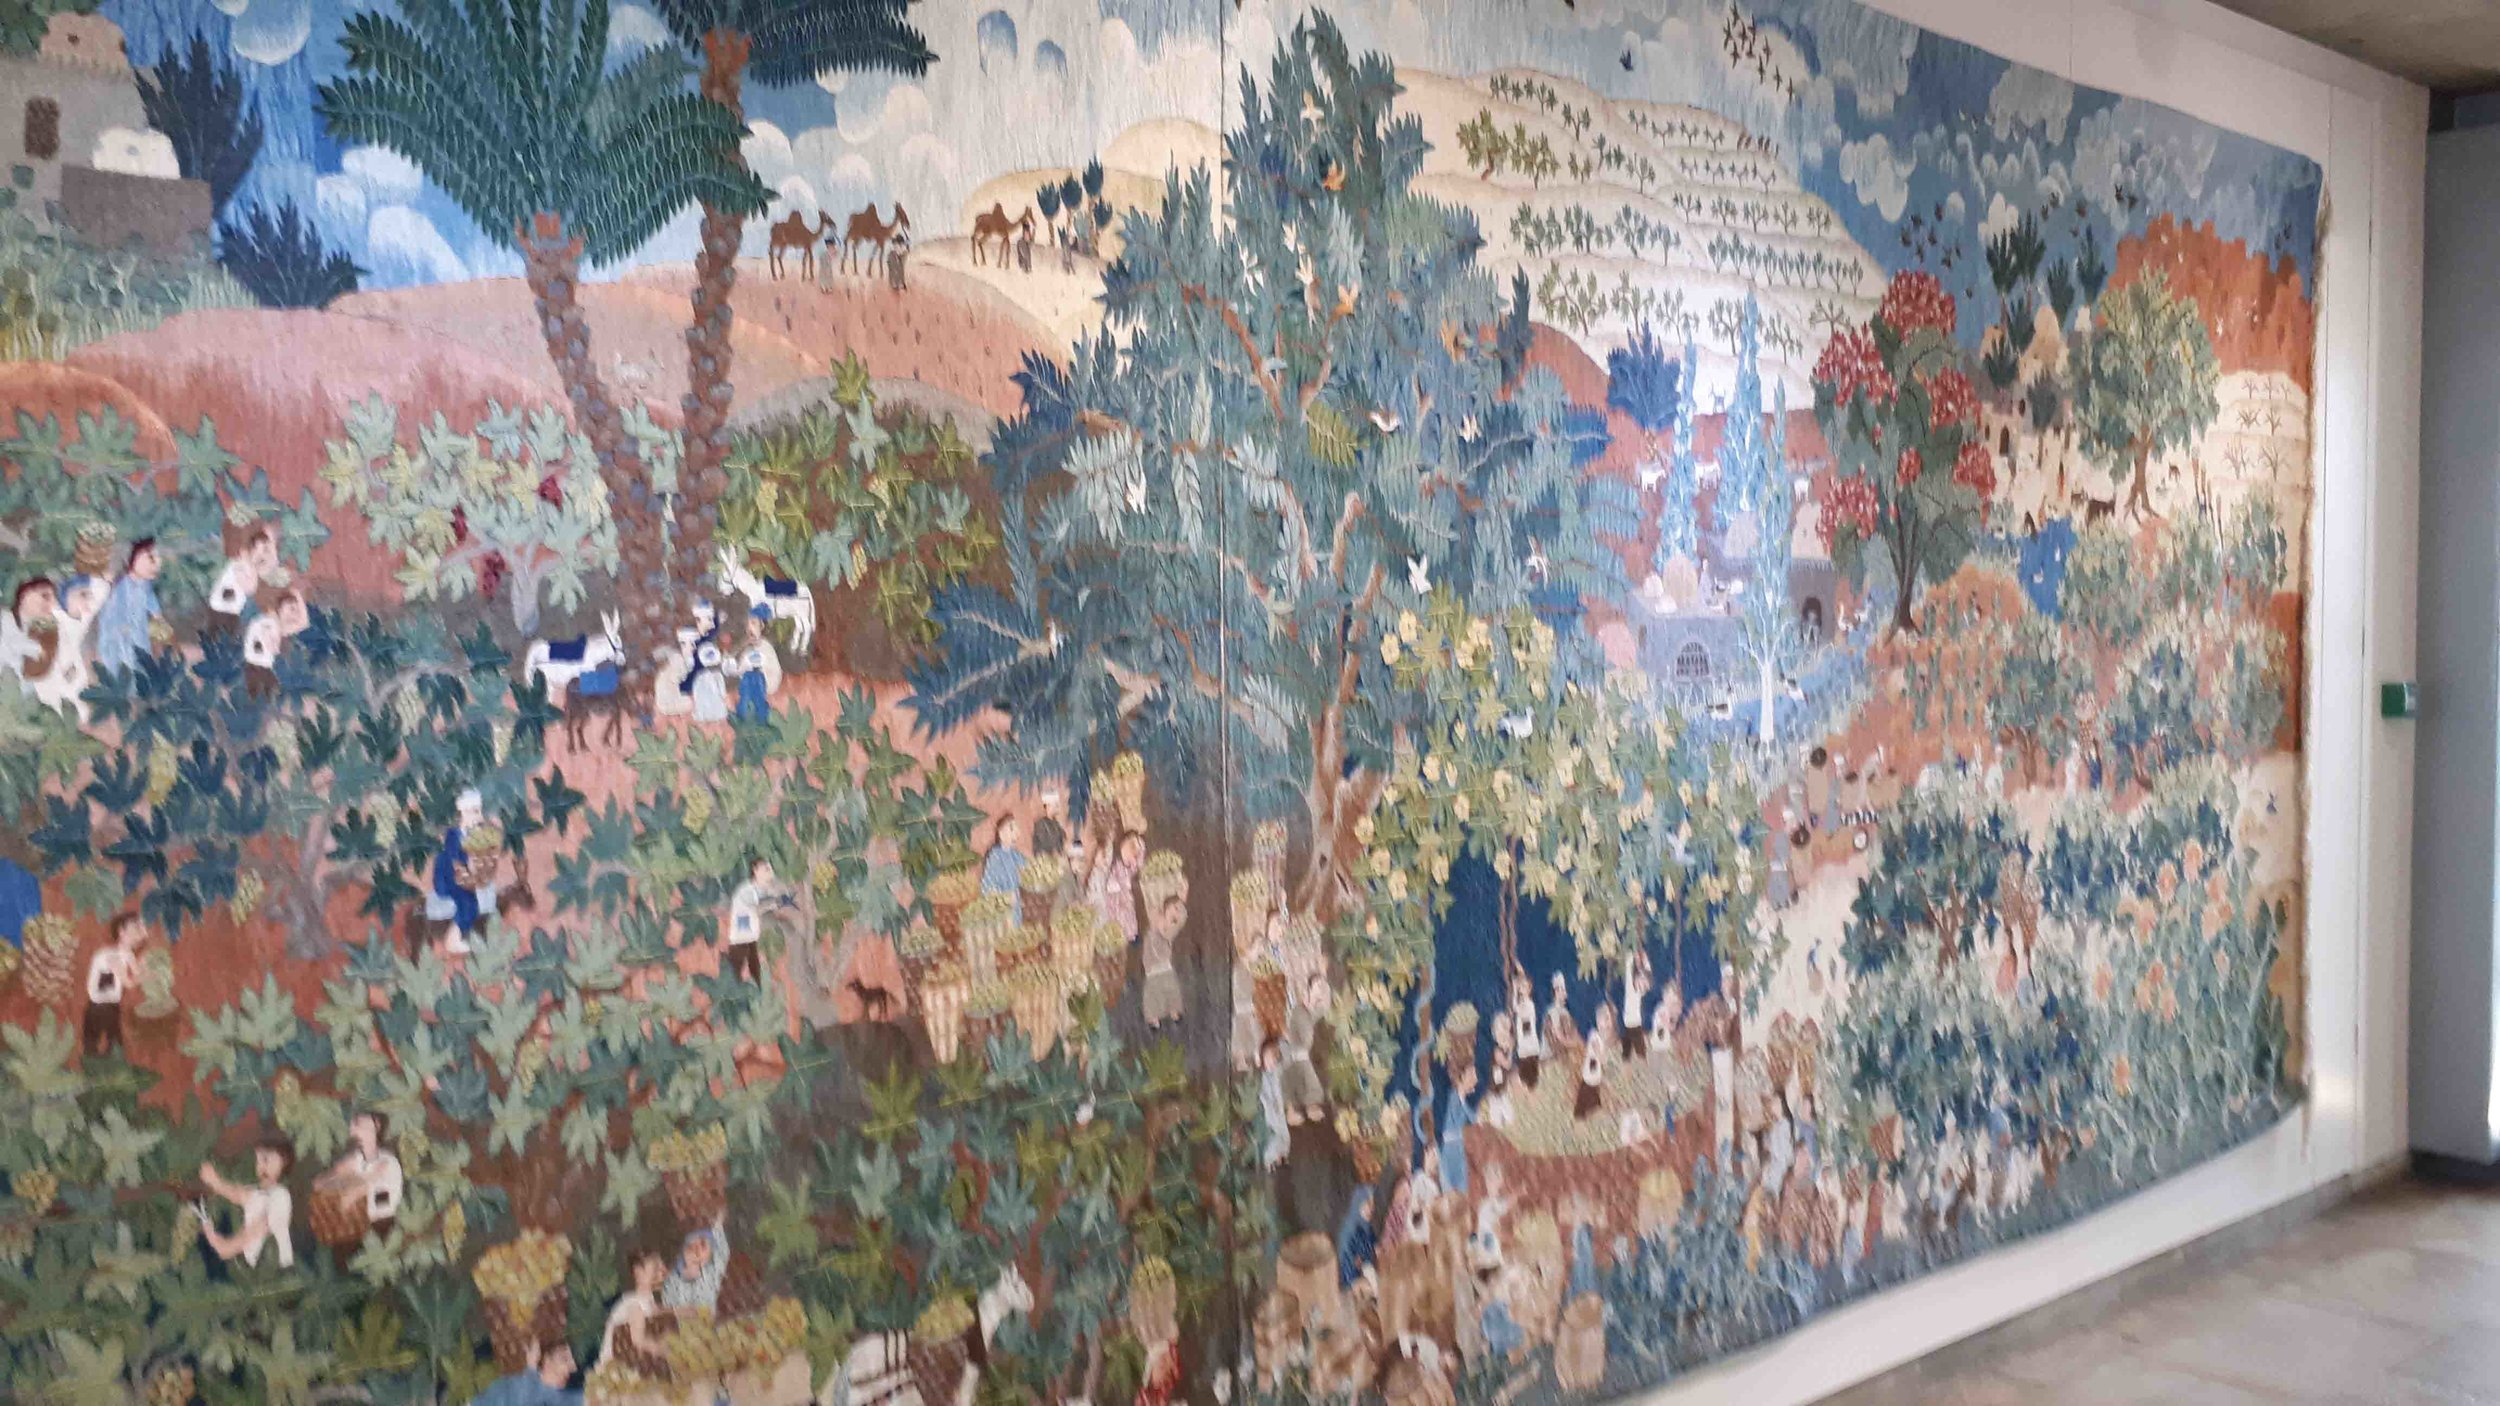 Tapestry at Tokara